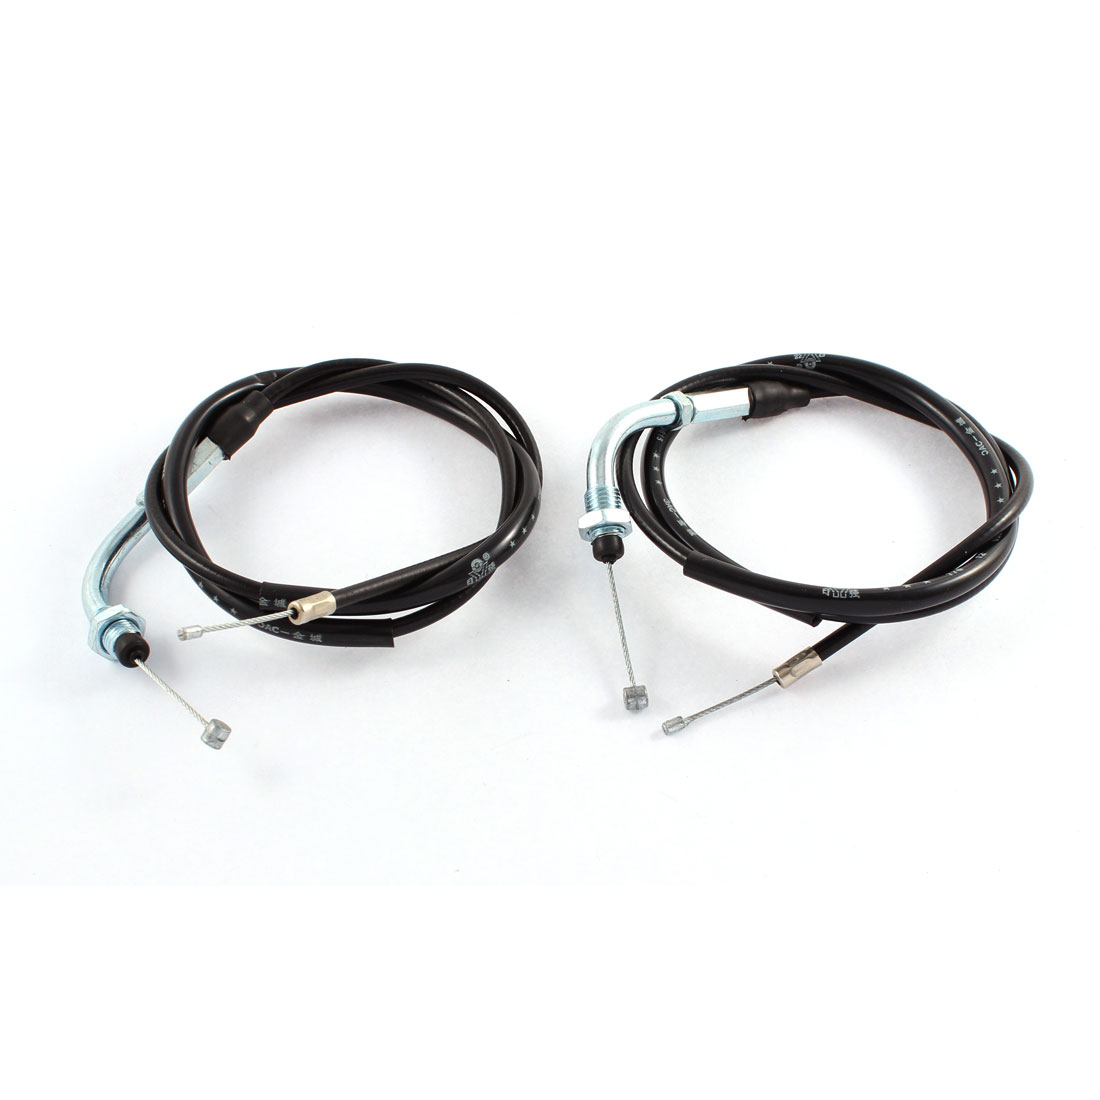 2 Pcs 100cm x 1cm Black Flexible Throttle Gas Pedal Cable Wire Assembly for CG 125